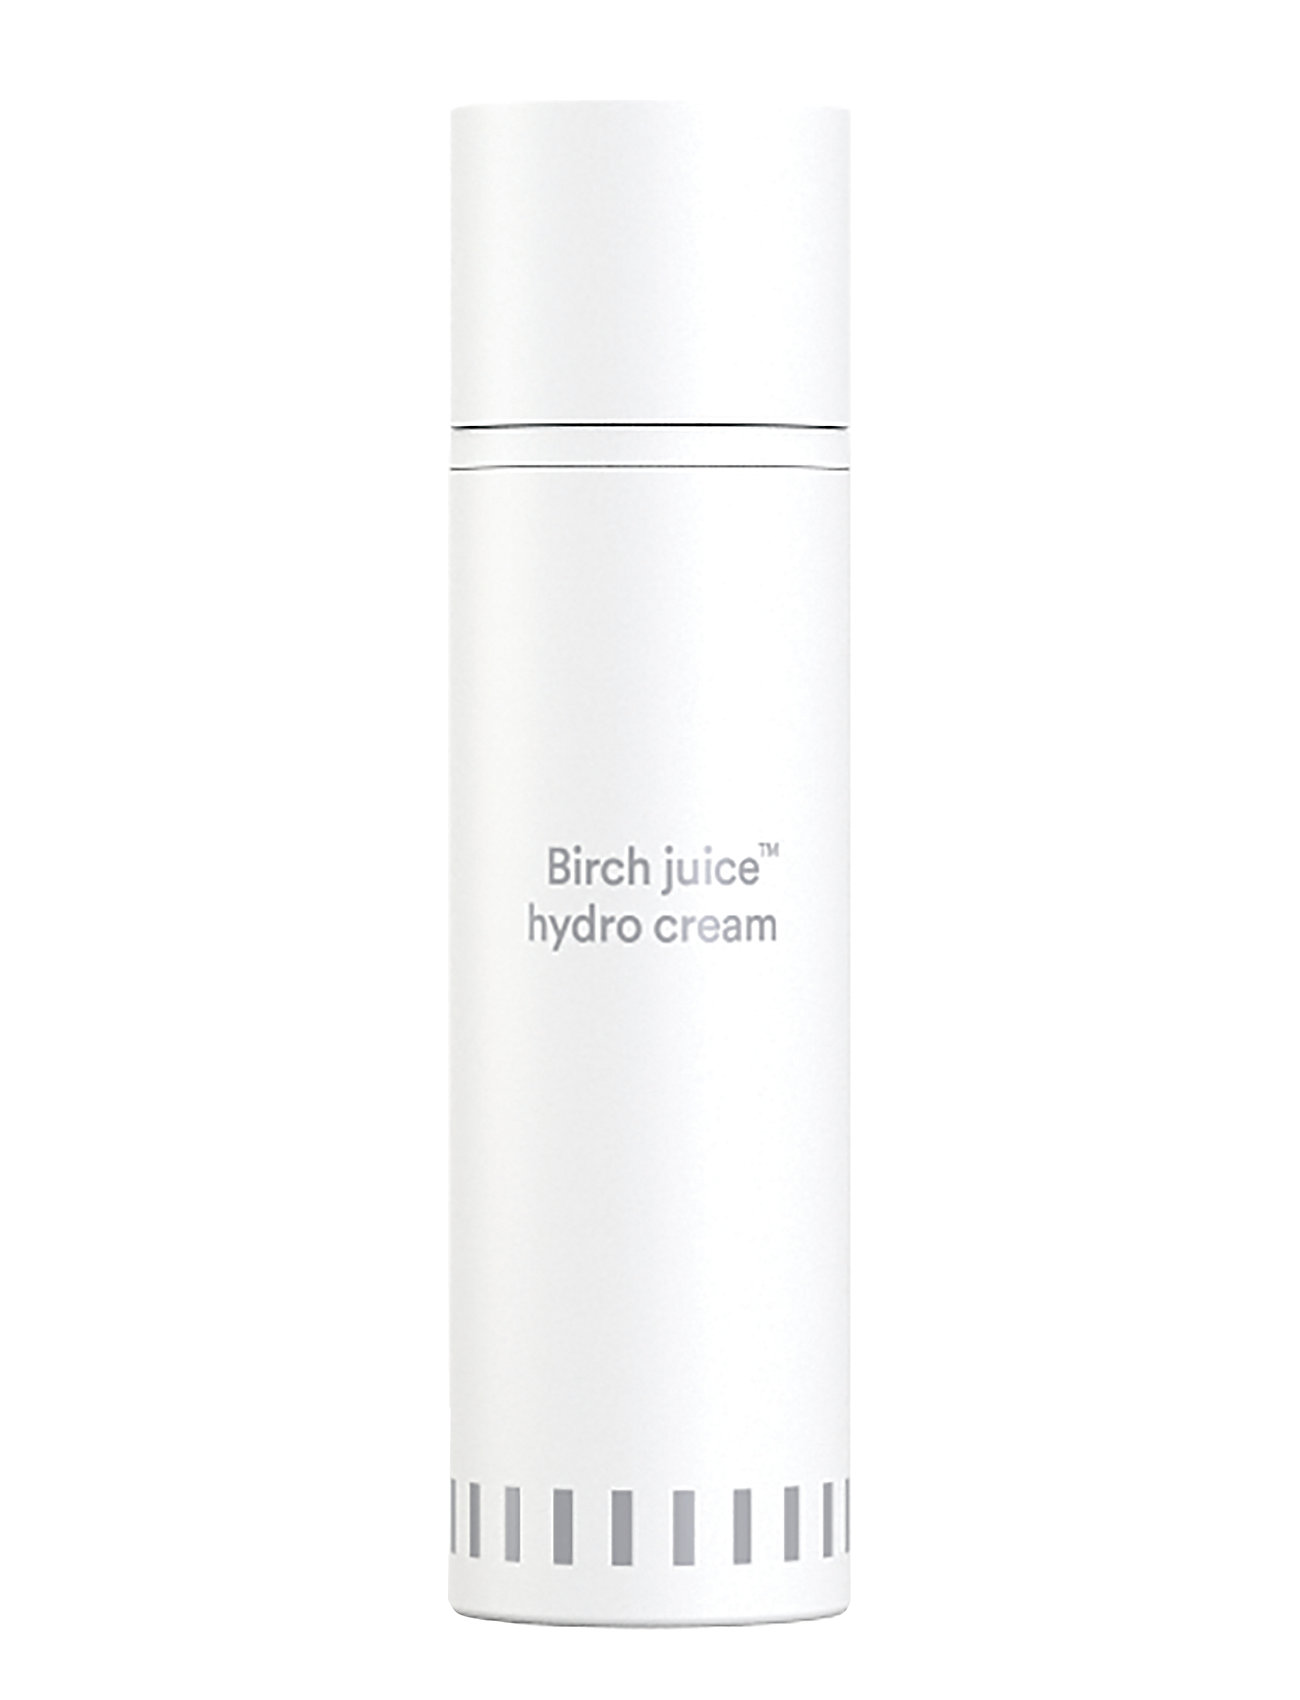 E NATURE E NATURE Birch juice™ hydro  Cream - CLEAR